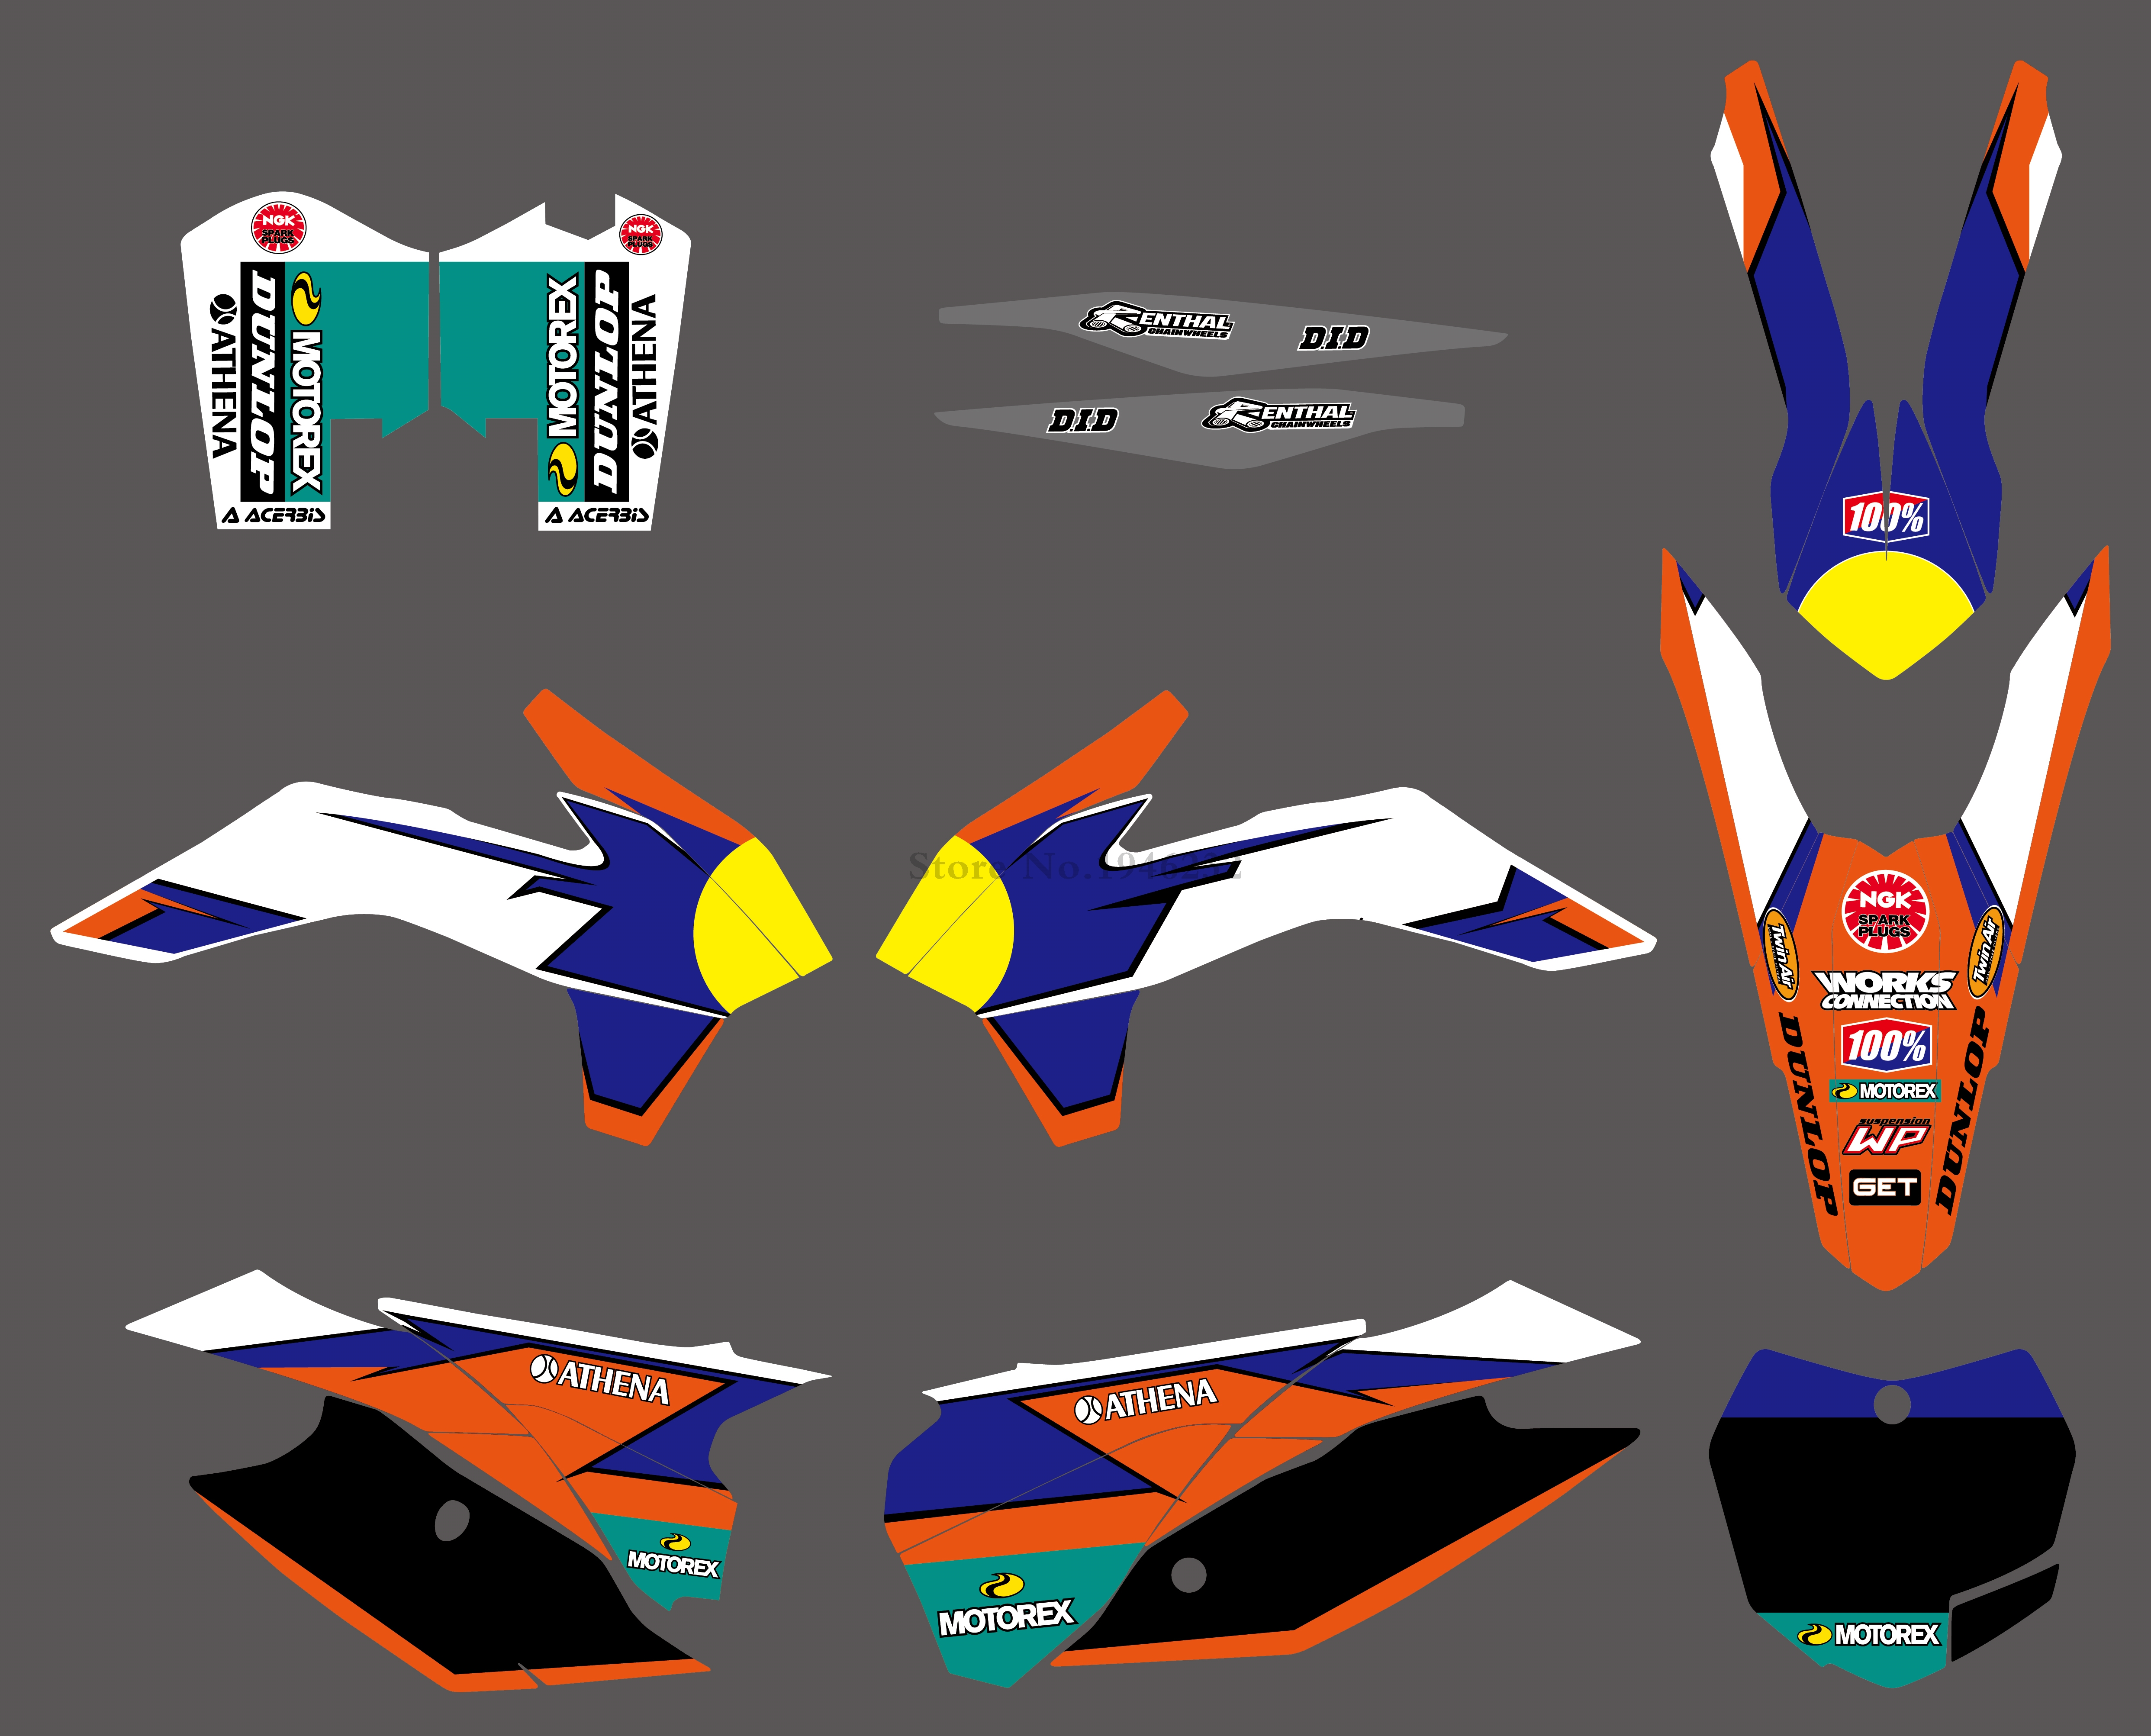 H2CNC NEW STYLE TEAM GRAPHICS DECALS STICKERS FOR KTM SX SXF XC XCF 125 200 250 300 350 450 2013 2014 2015 pivot brake clutch lever for ktm 125 150 200 250 450 505 xc f exc xc sx sx f xc w motorcycle dirt bike off road cnc